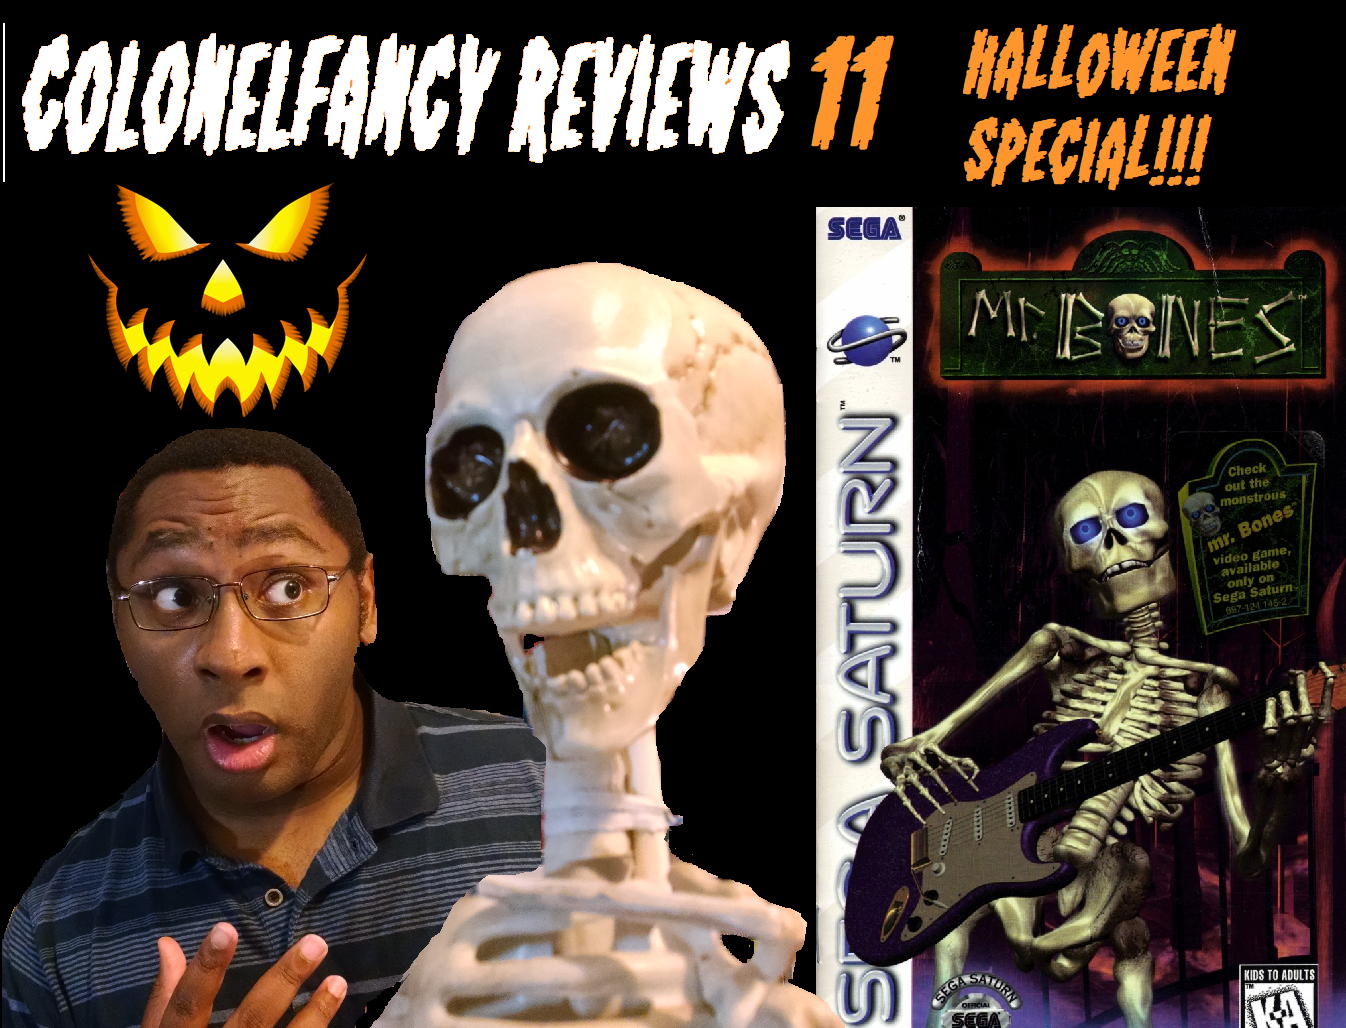 CF Reviews 11 Halloween Special – Mr. Bones (Sega Saturn)